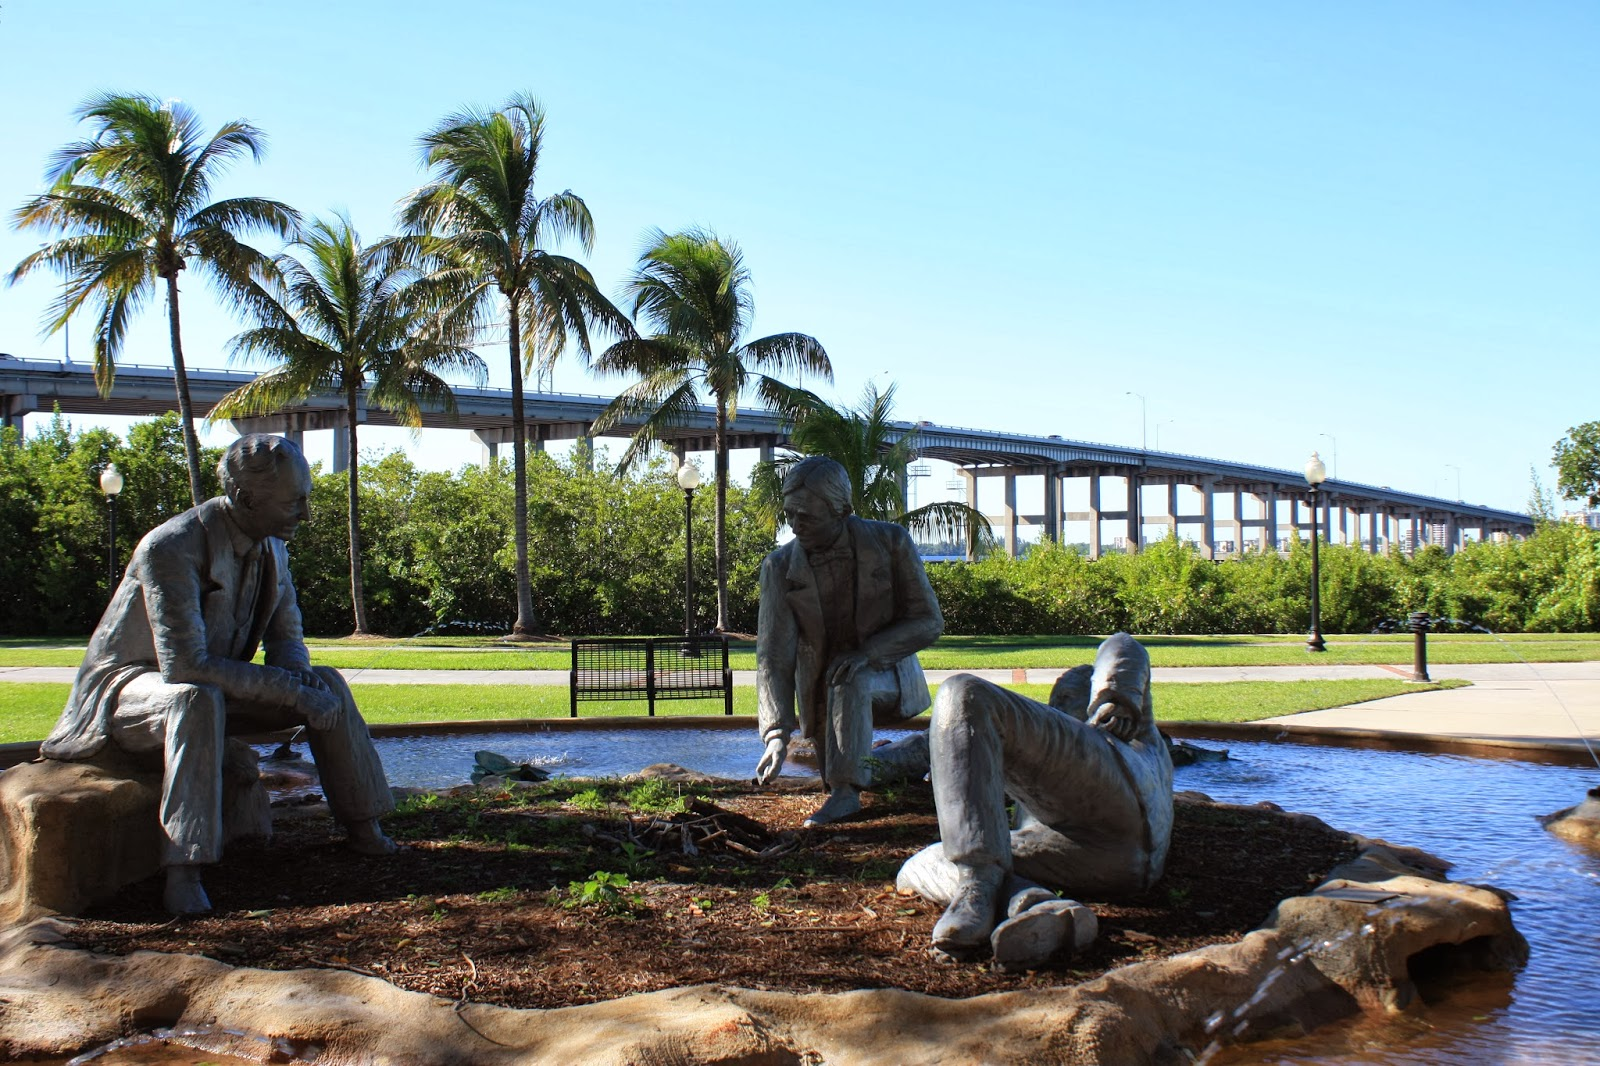 Meandering Joy LaBelle To Fort Myers